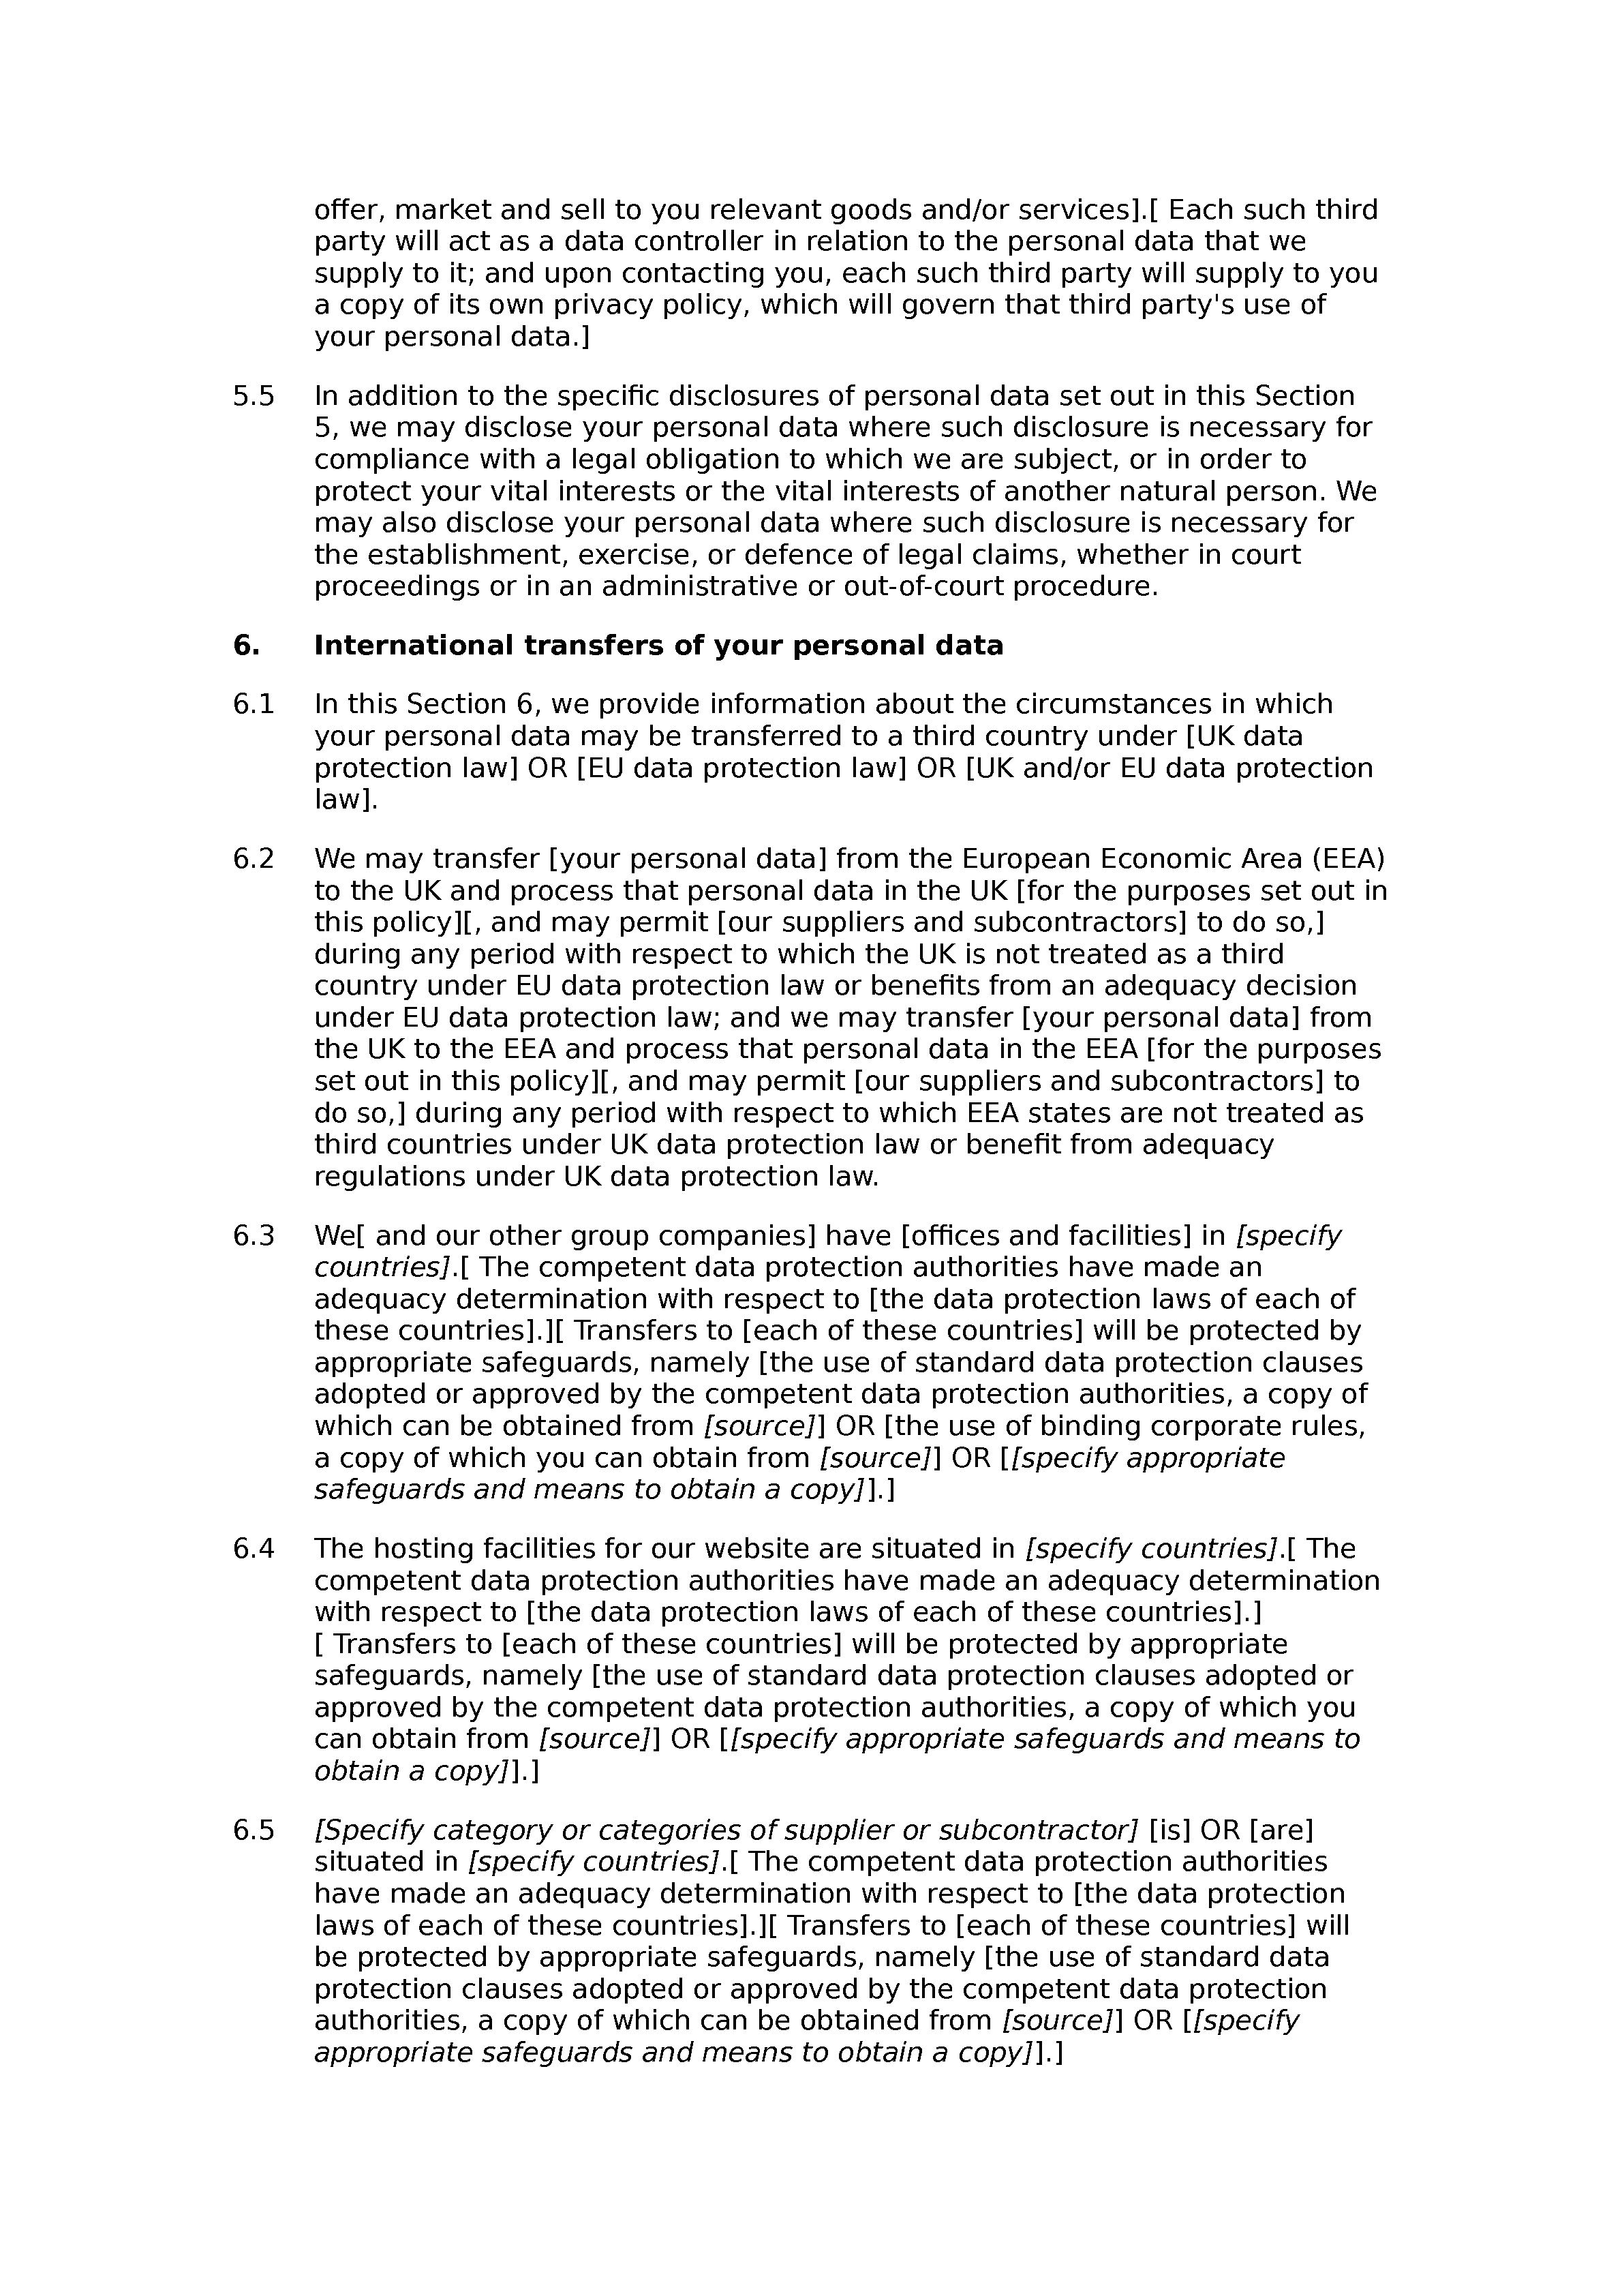 Privacy and cookies policy (lead generation) document preview